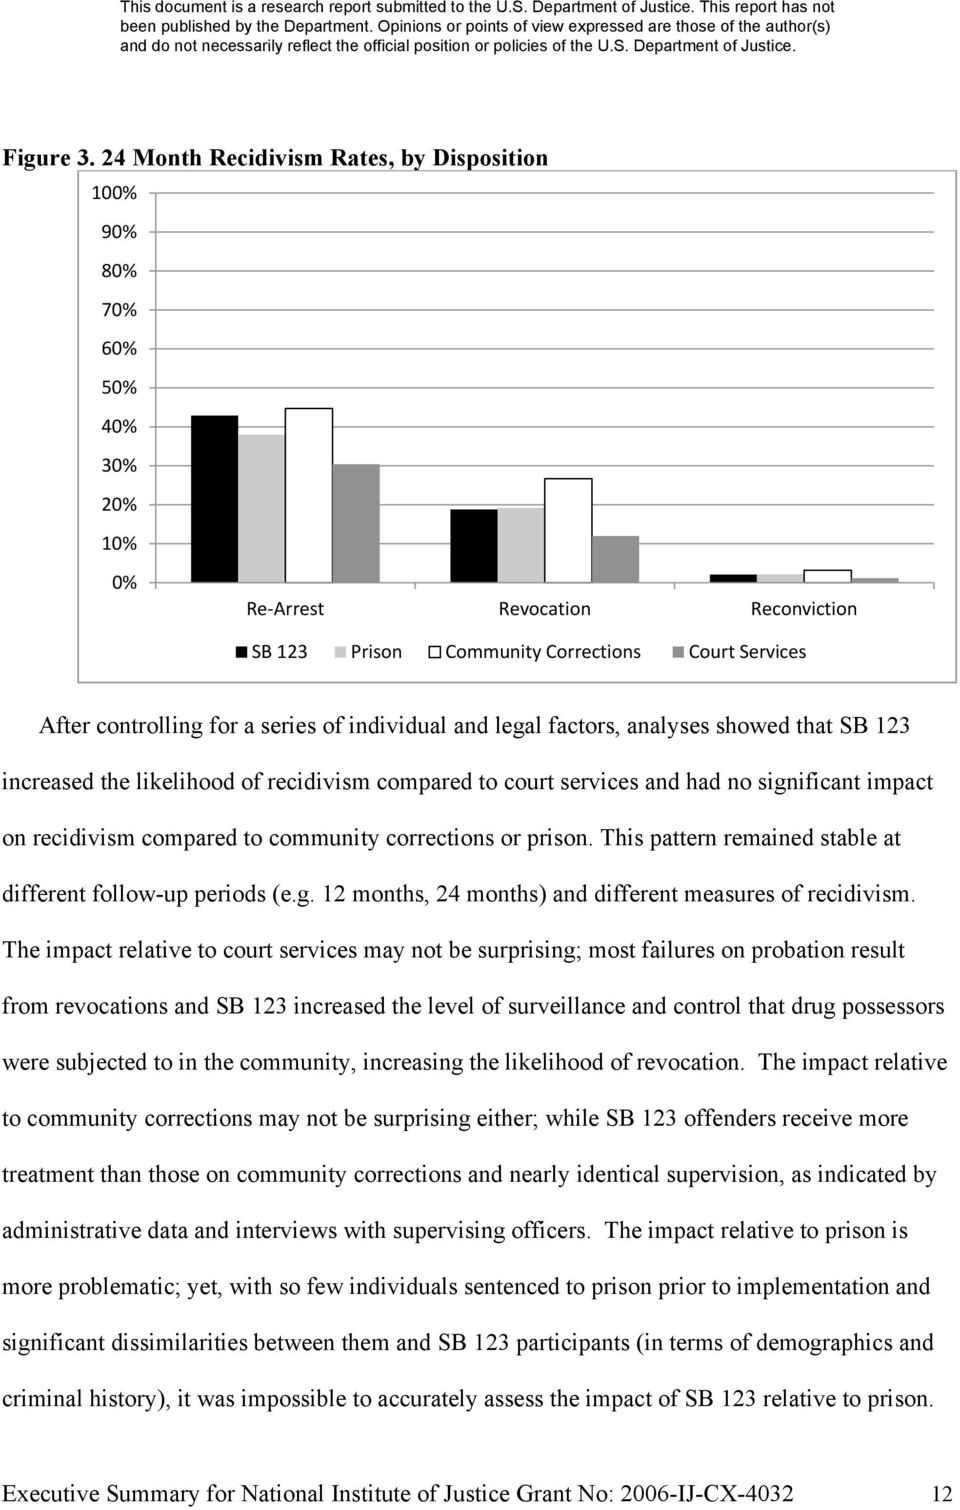 series of individual and legal factors, analyses showed that SB 123 increased the likelihood of recidivism compared to court services and had no significant impact on recidivism compared to community